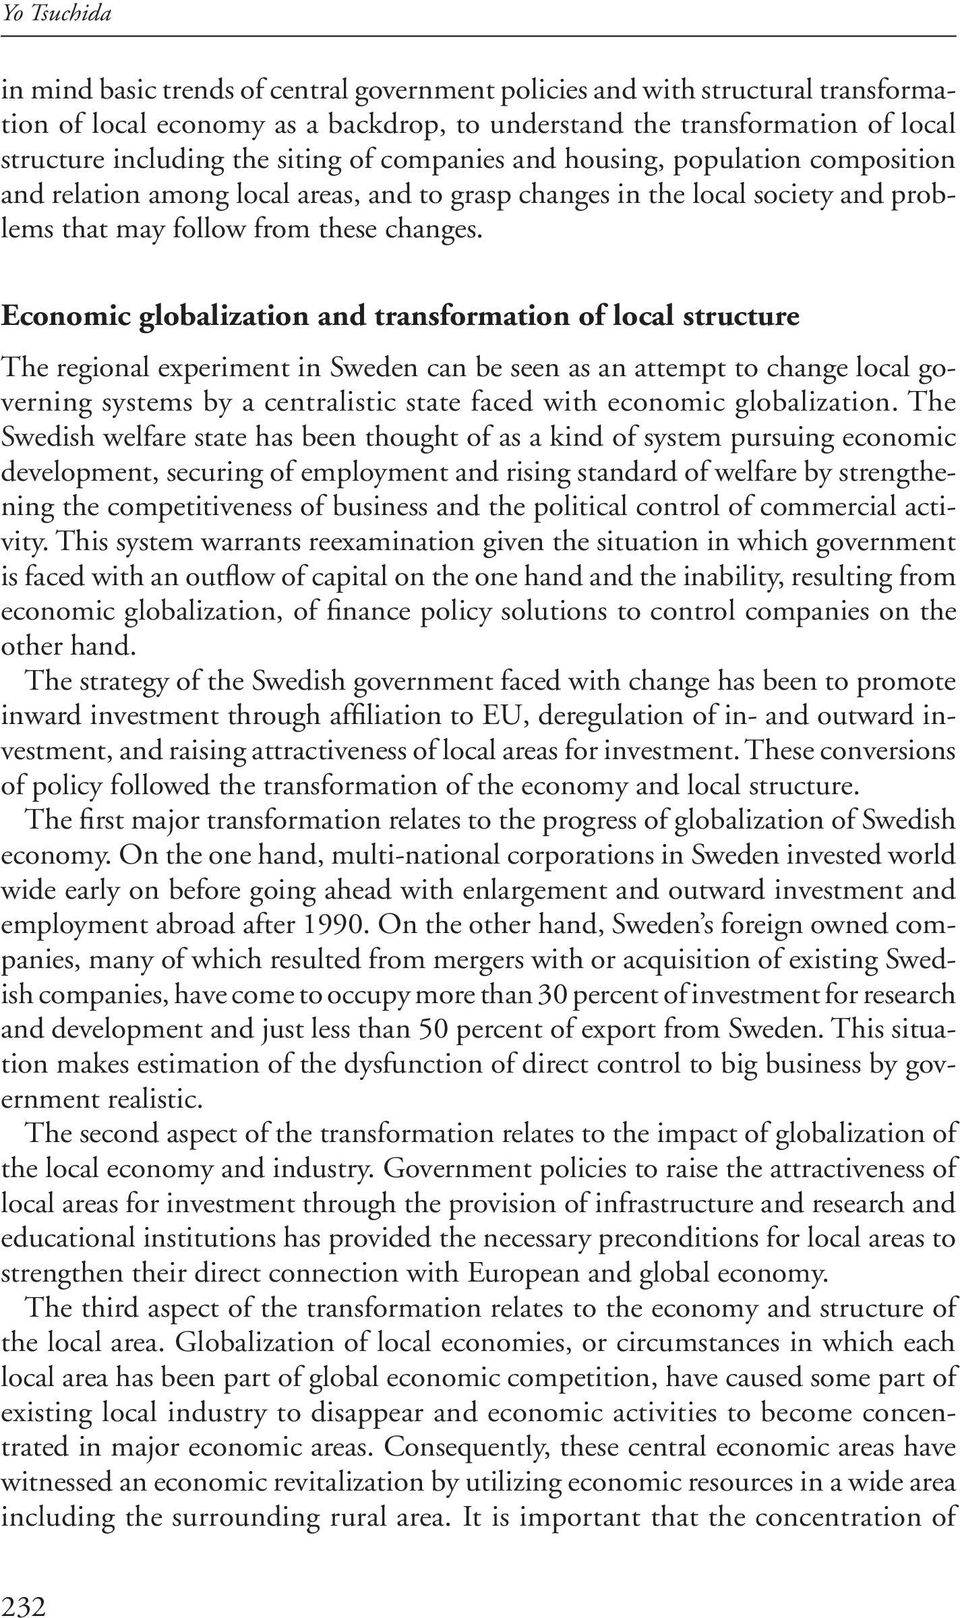 Economic globalization and transformation of local structure The regional experiment in Sweden can be seen as an attempt to change local governing systems by a centralistic state faced with economic